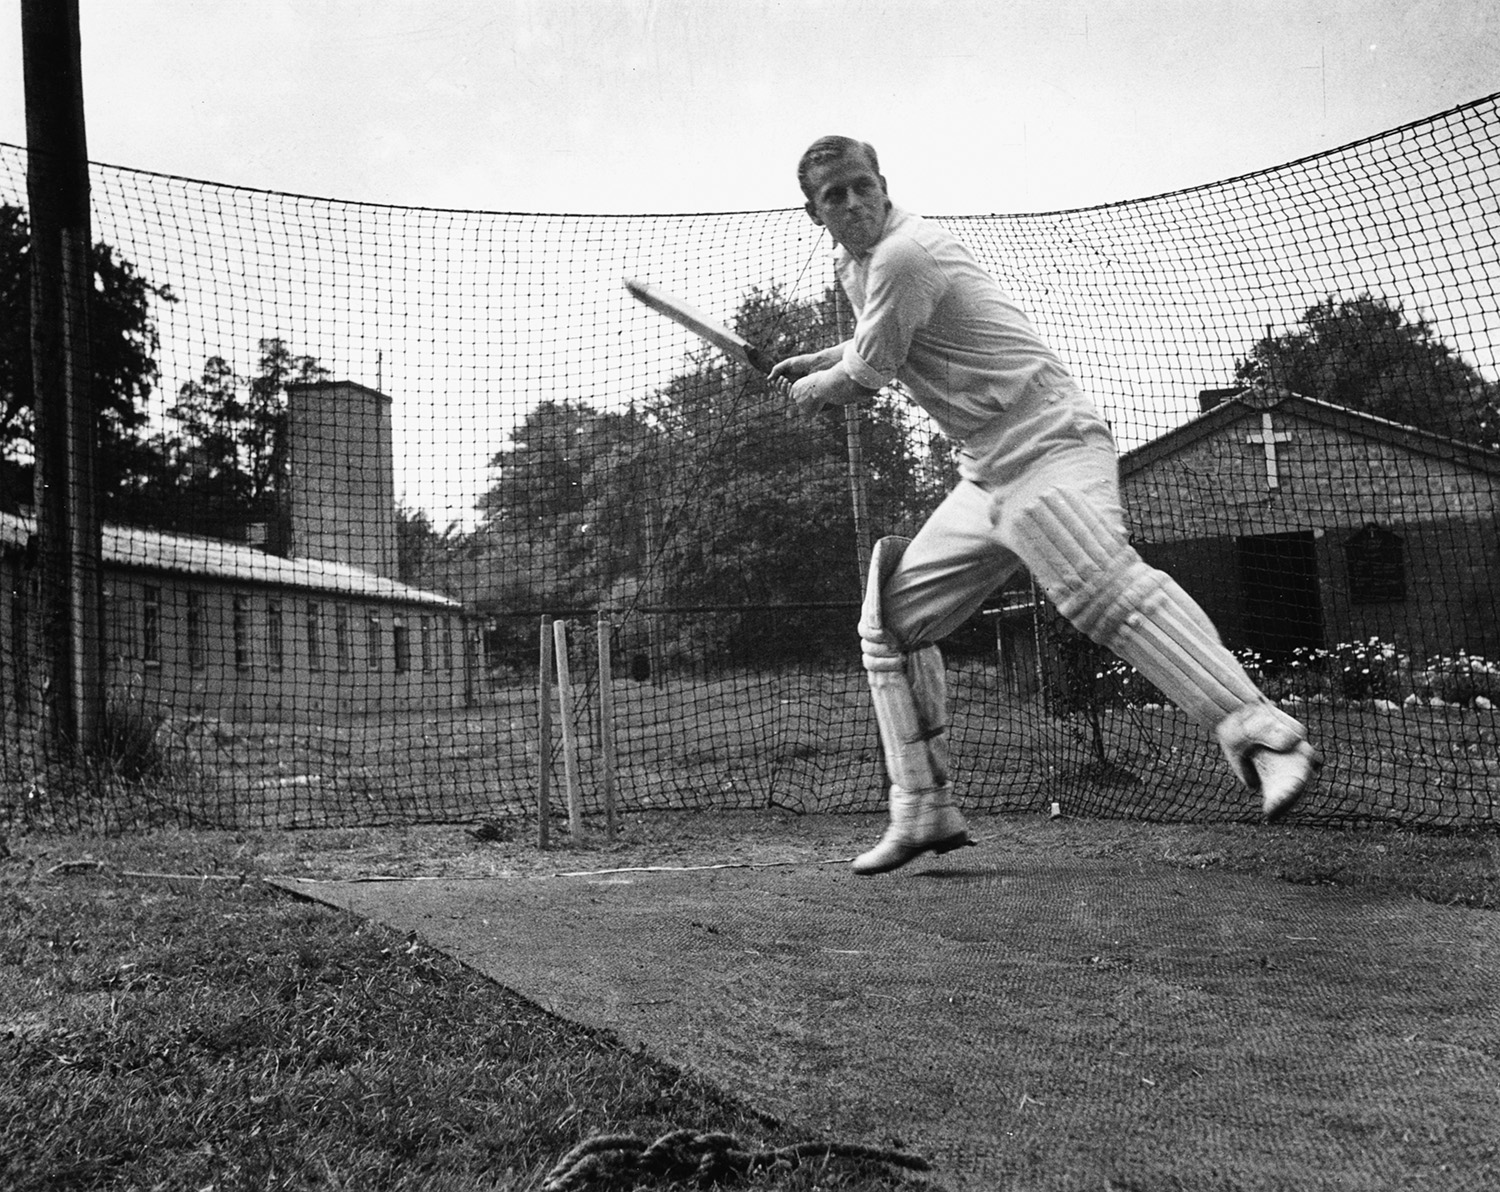 Philip Mountbatten, prior to his marriage to Princess Elizabeth, batting at the nets during cricket practice while in the Royal Navy, July 31st 1947.